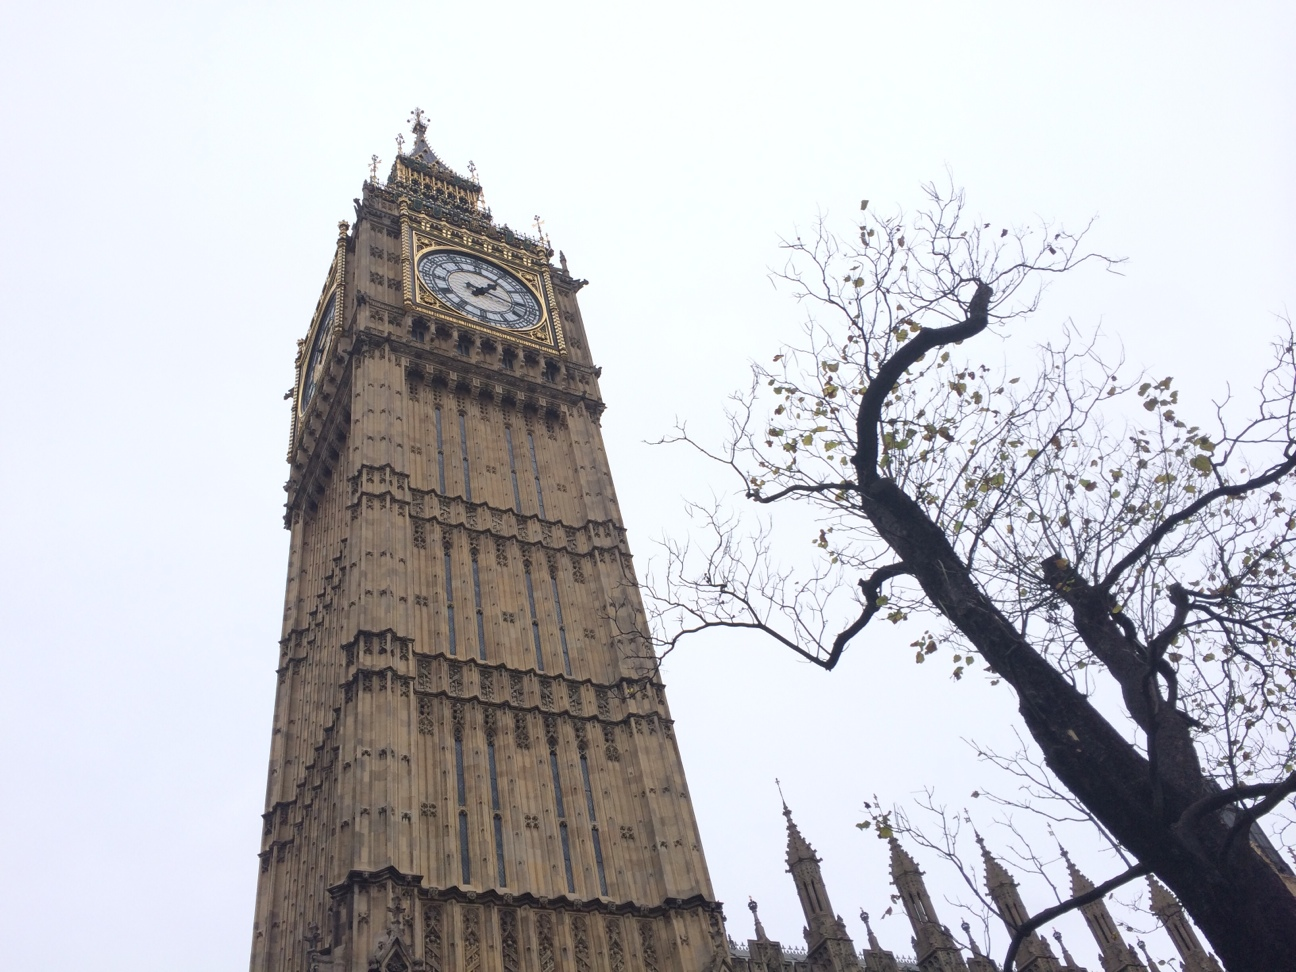 The Elizabeth Tower with Big Ben in London. (Nick DeMichele)